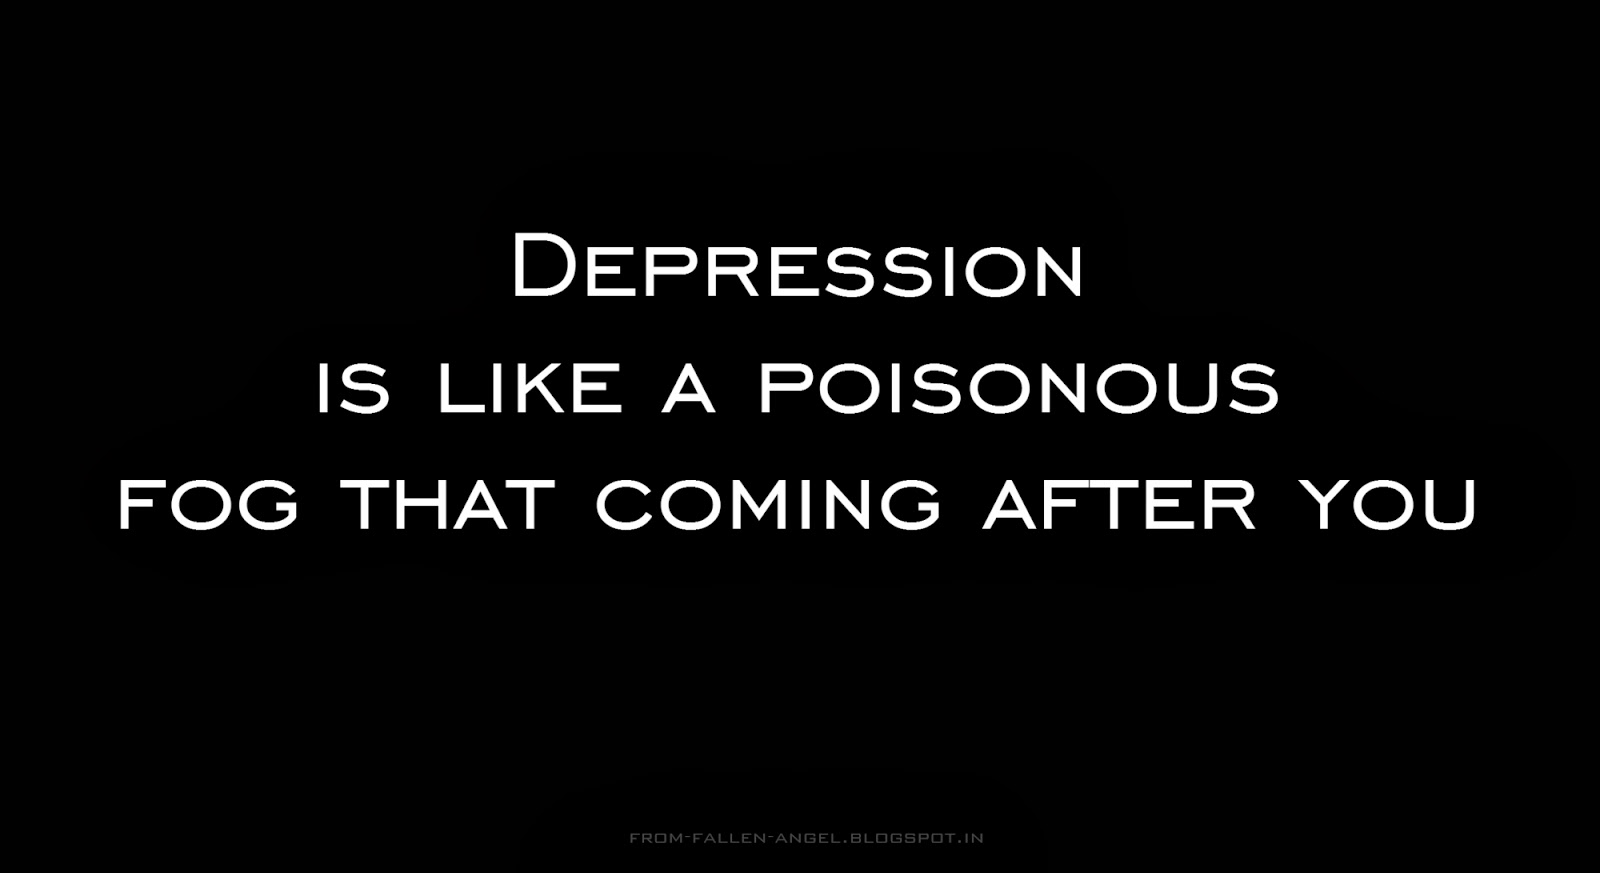 Depression is like a poisonous fog that coming after you